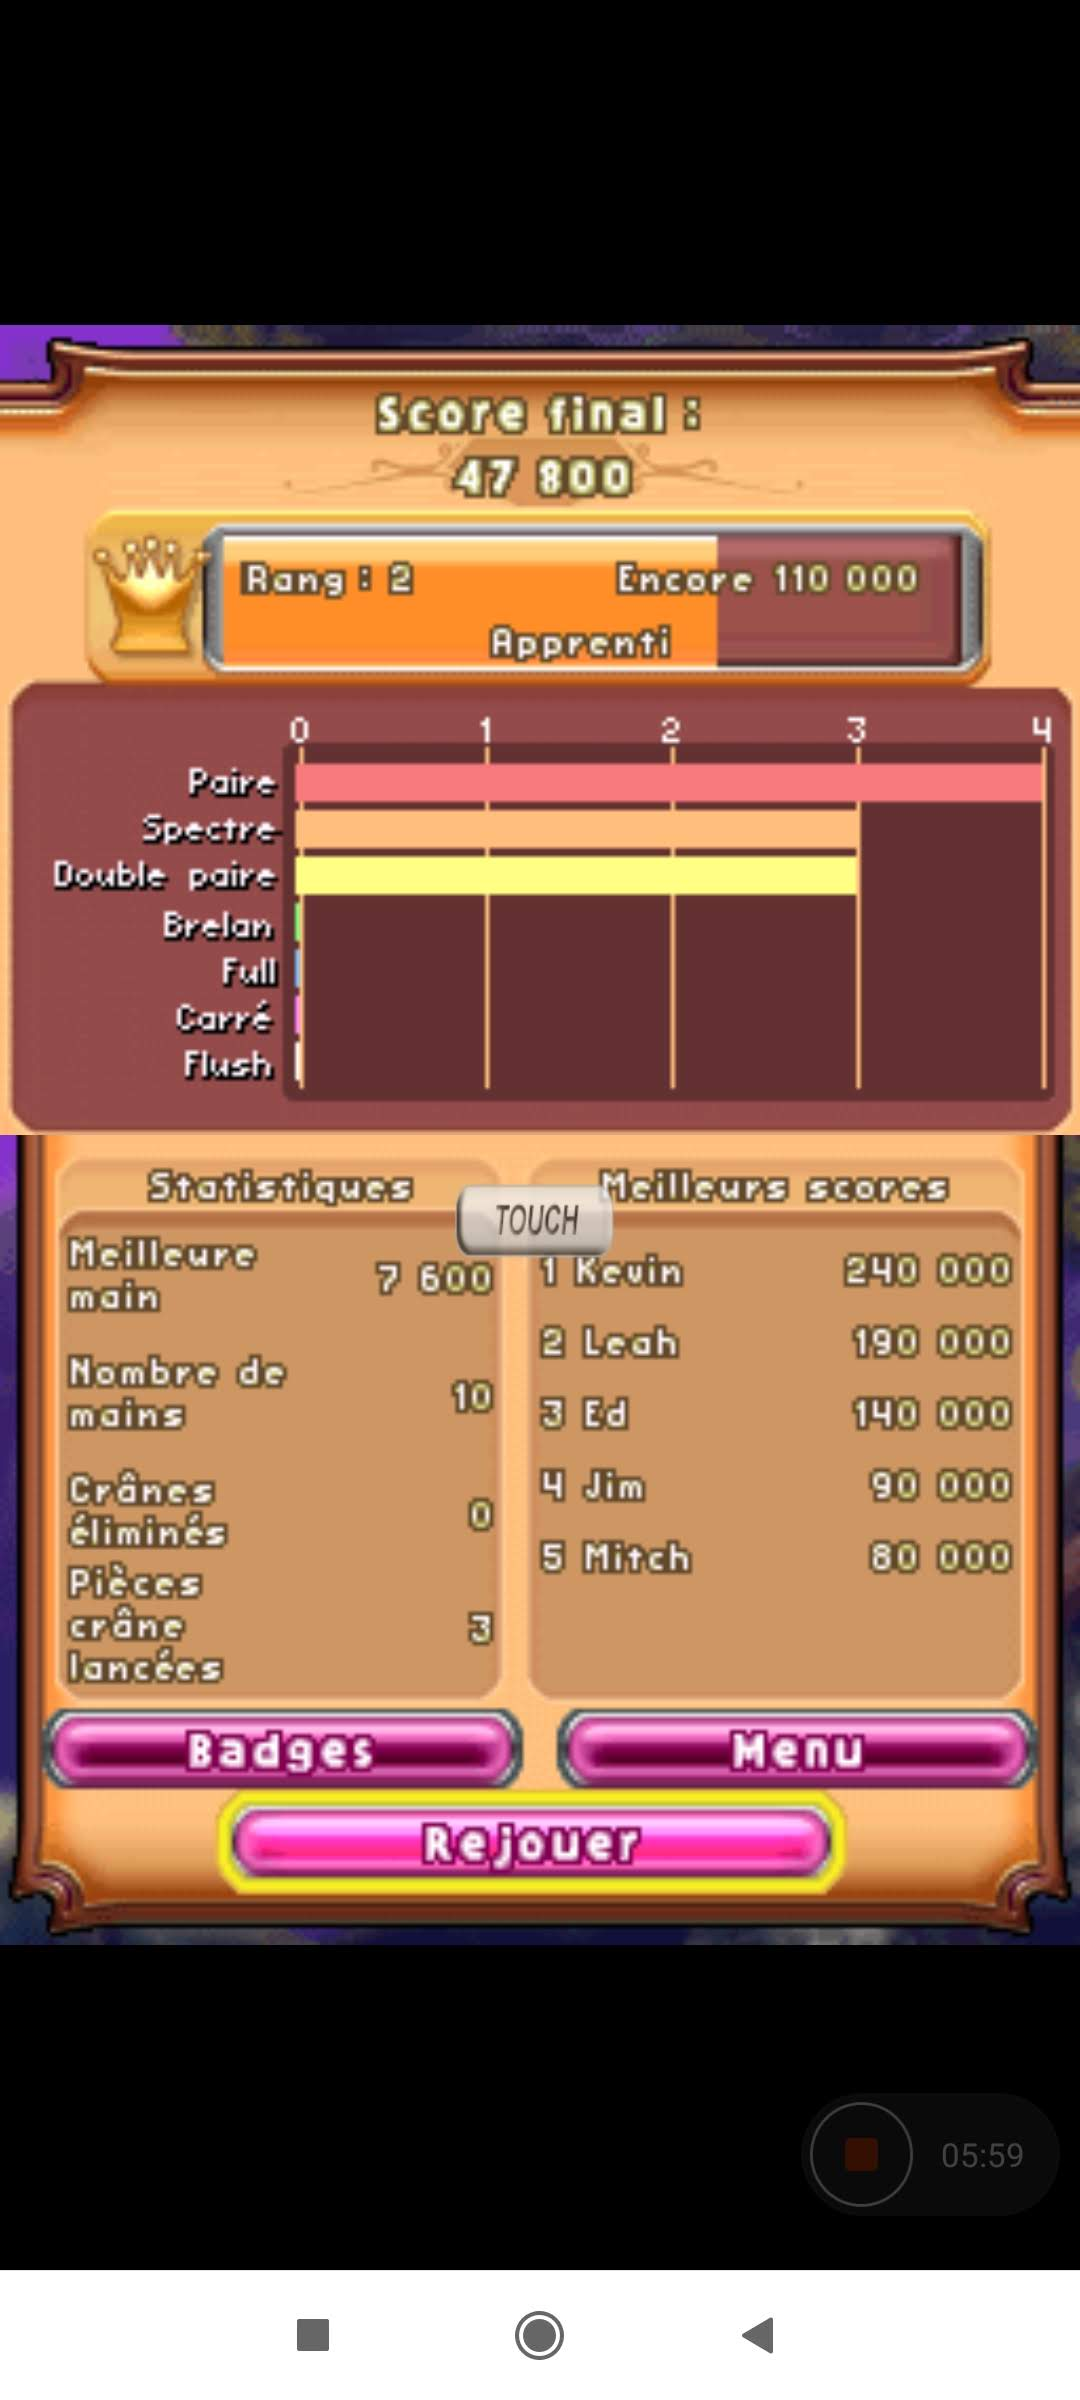 Larquey: Bejeweled 3: Poker [Number of Pair] (Nintendo DS Emulated) 4 points on 2020-09-26 03:24:07